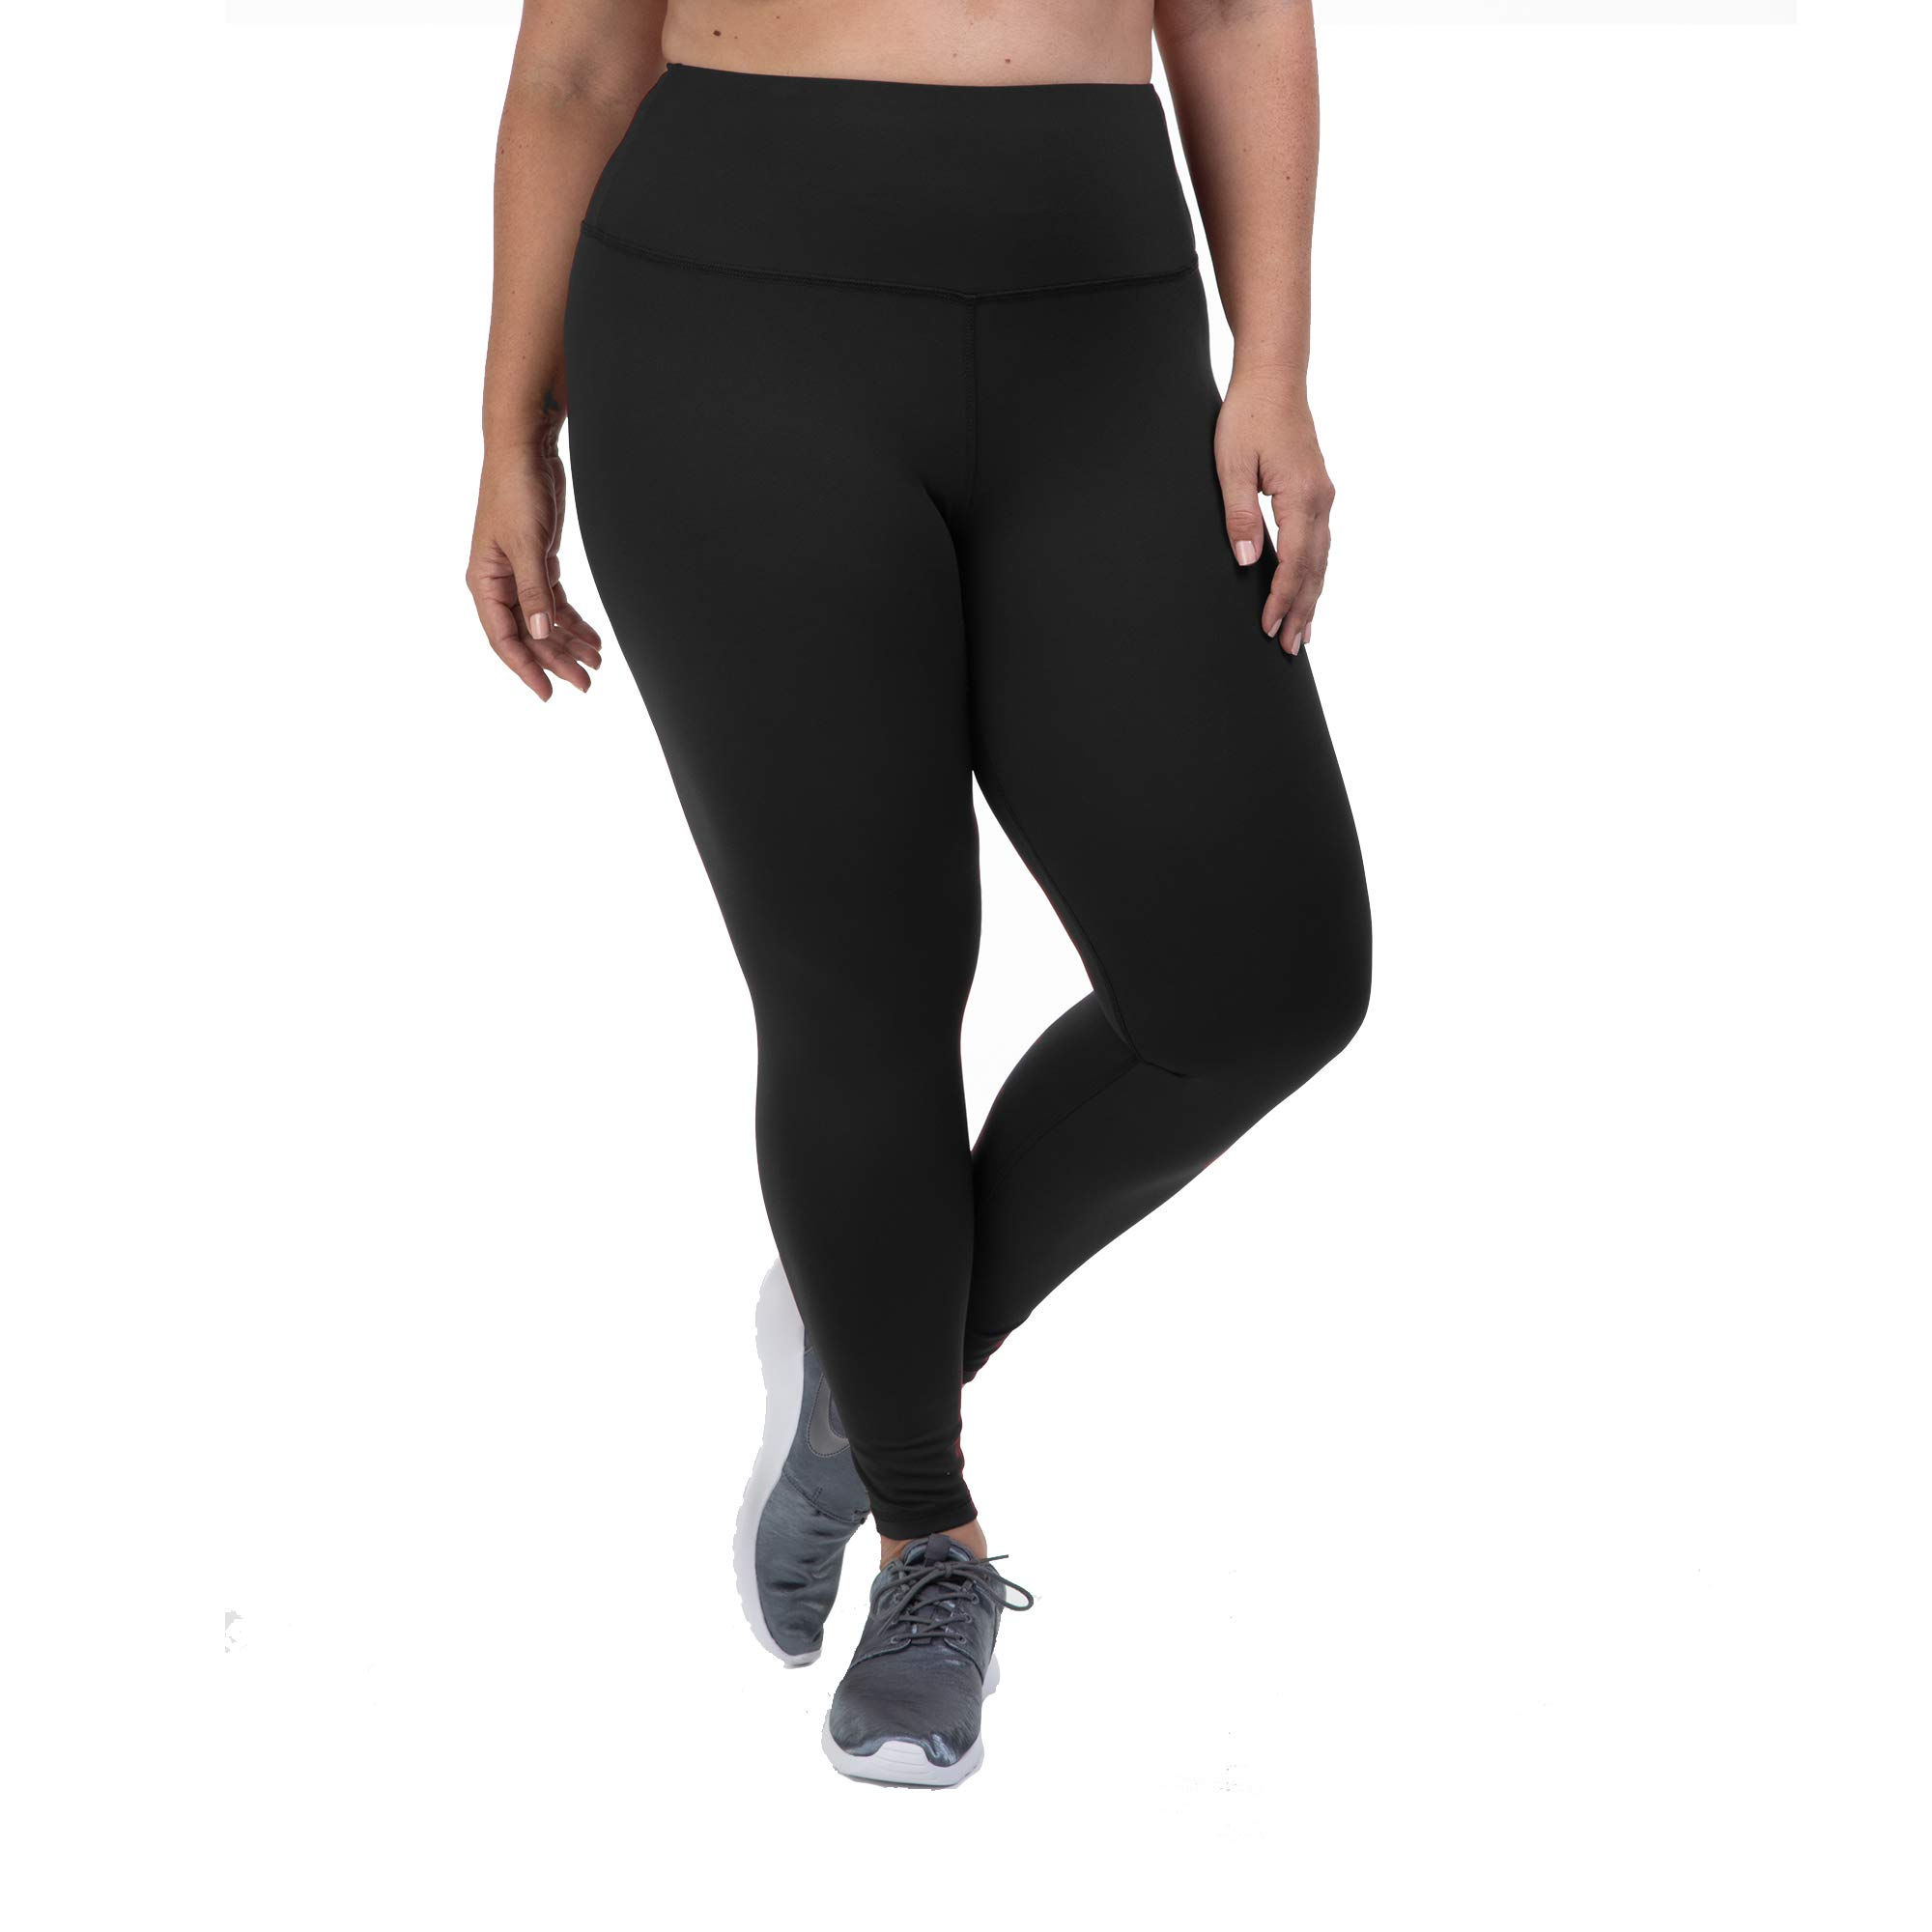 Lola Getts Plus Size High Rise Non-Sheer Leggings -That Won't Roll - Size 14-28